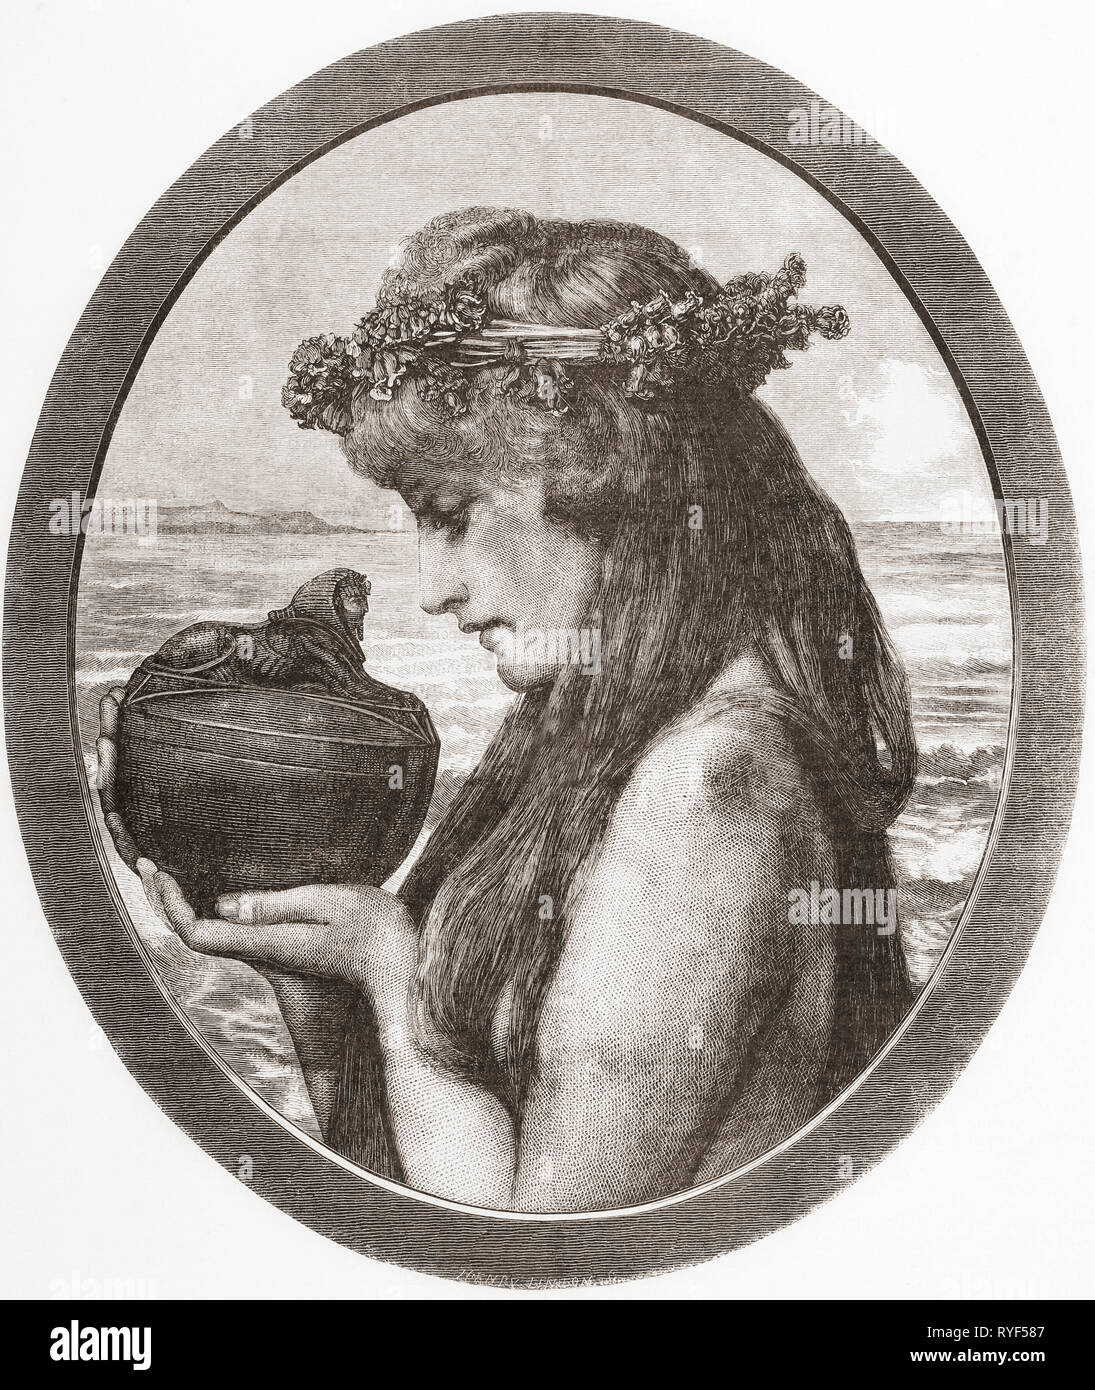 Pandora.  In Greek mythology Pandora opened a jar thereby releasing all the evils of humanity.  From Ilustracion Artistica, published 1887. - Stock Image